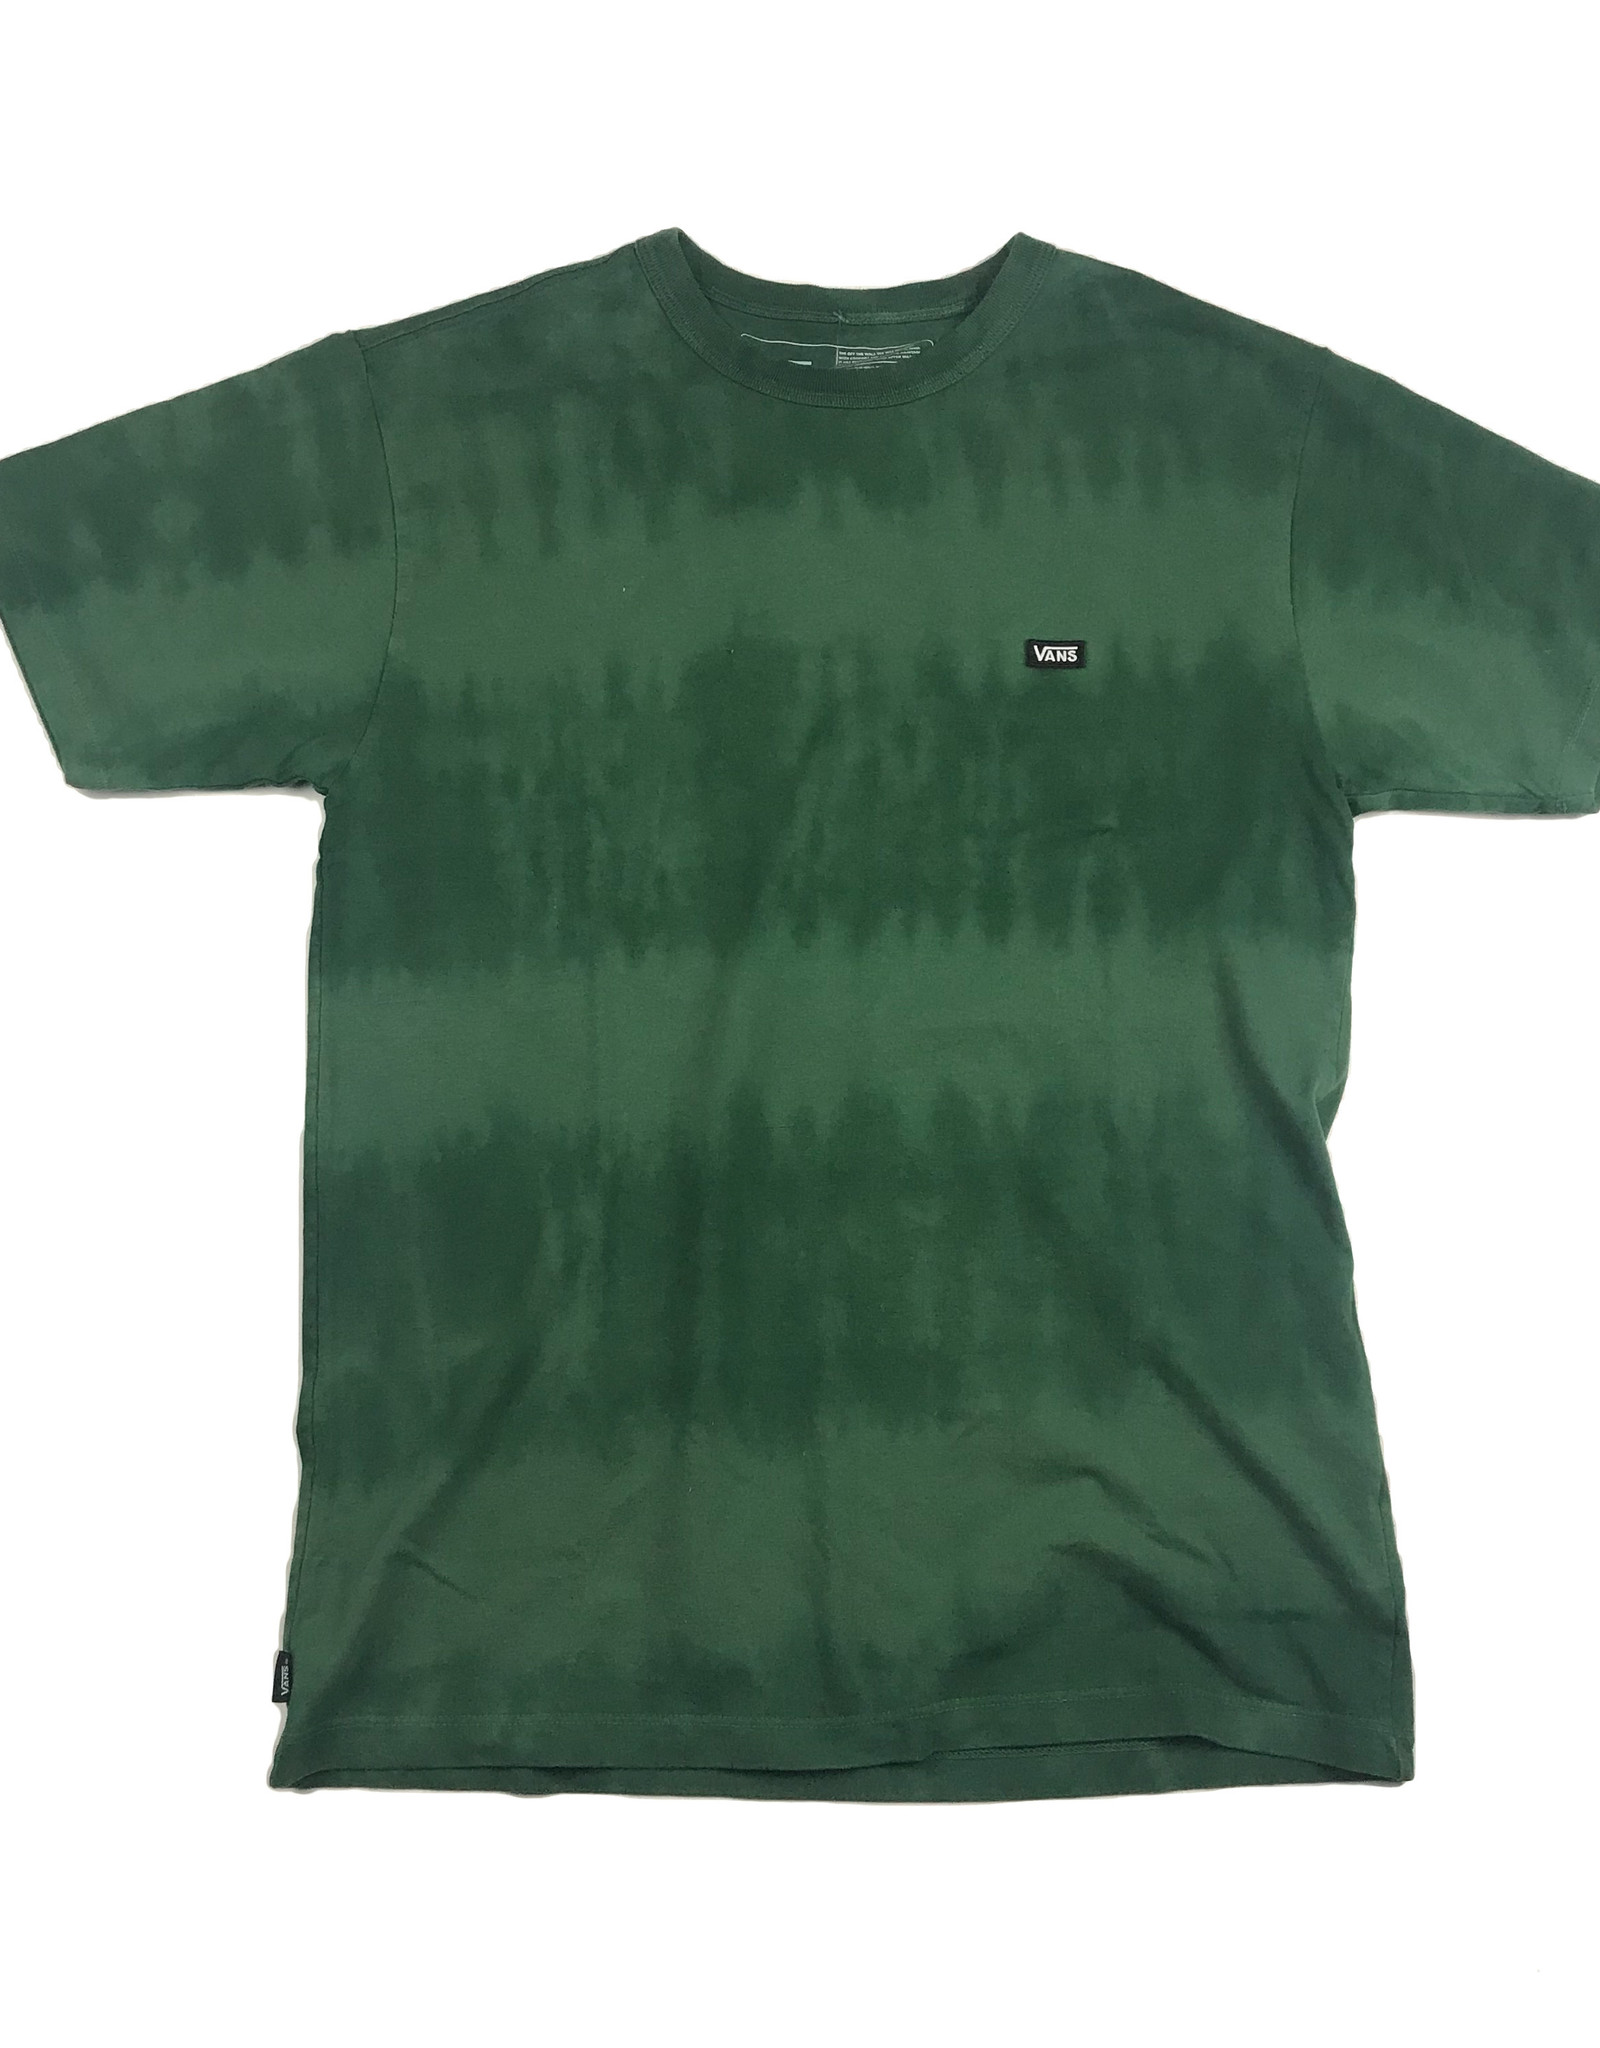 VANS VANS OFF THE WALL CLASSIC S/S TEE - PINE NEEDLE